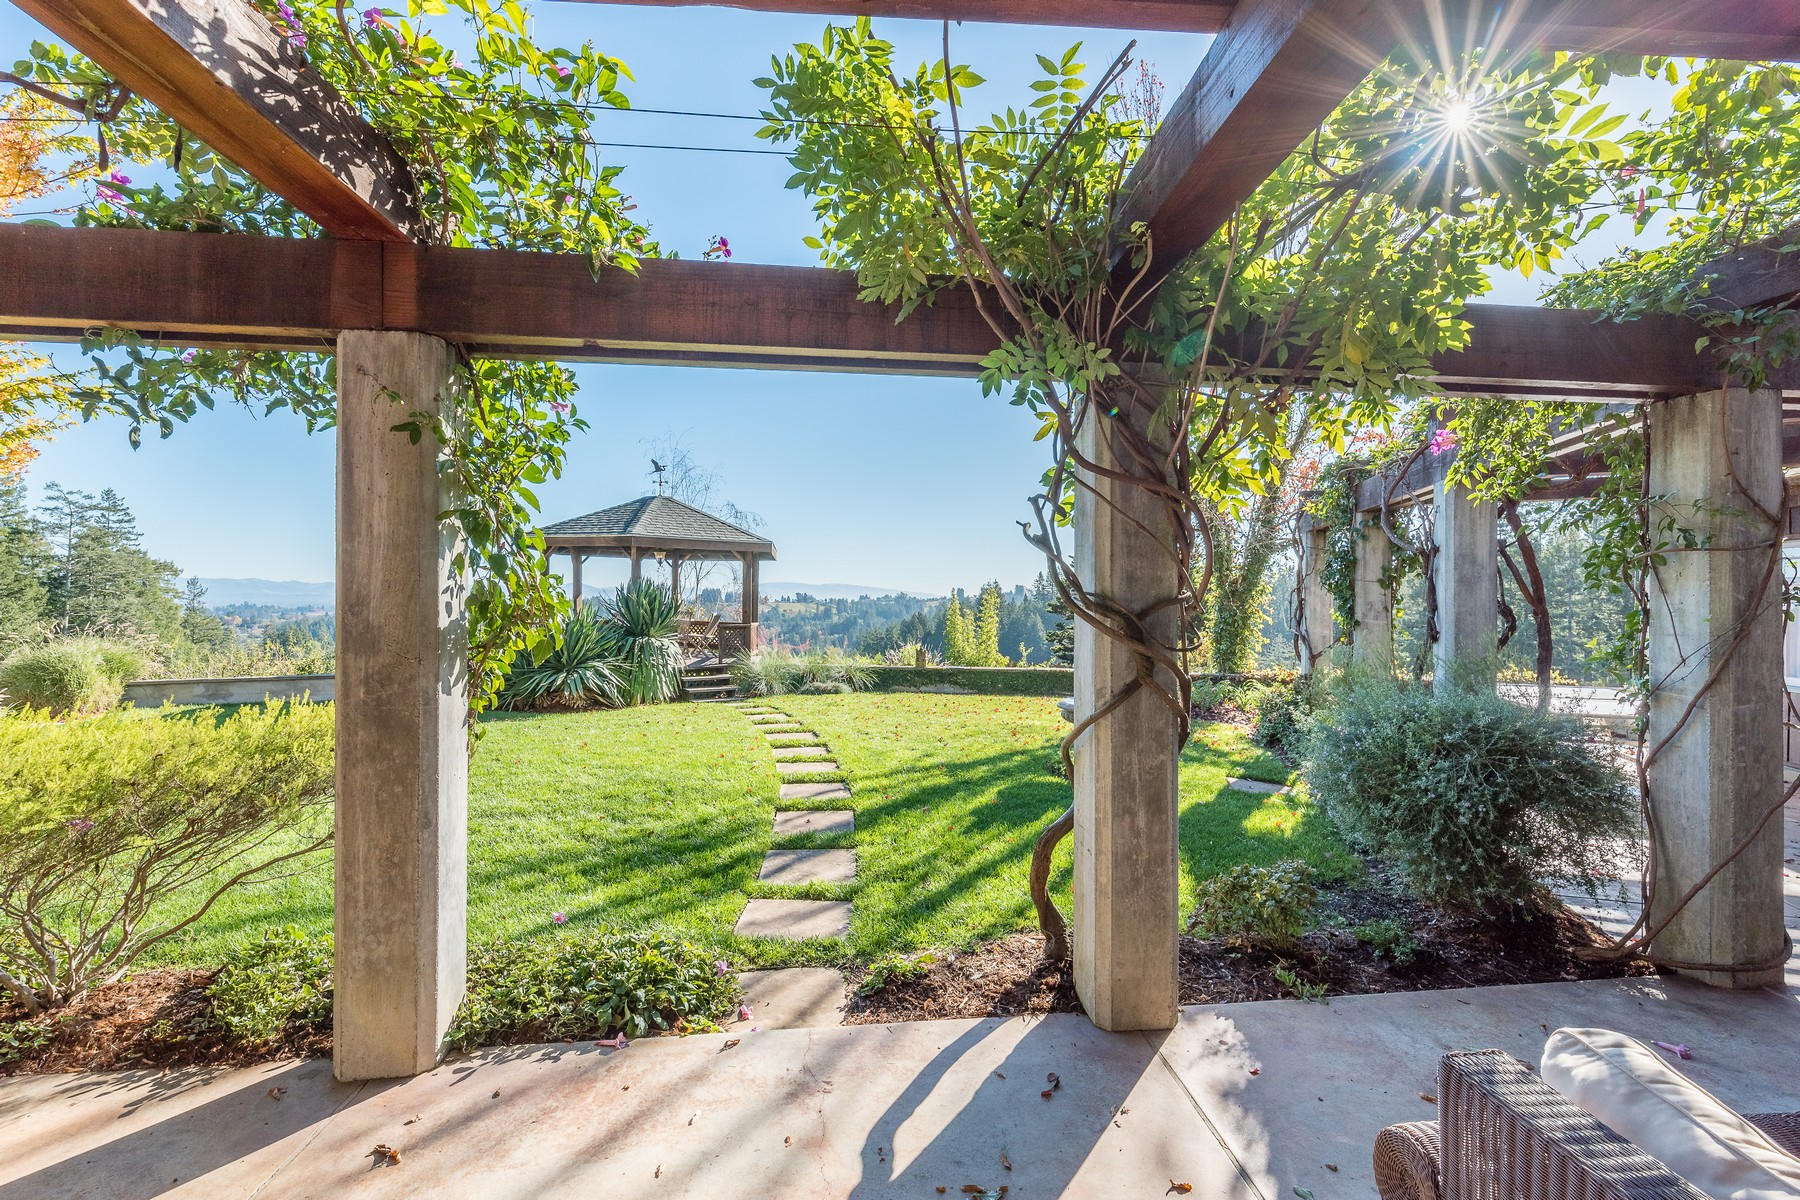 Single Family Home for Sale at Sunrise Ridge 12389 Dupont Road, Sebastopol, California, 95472 United States